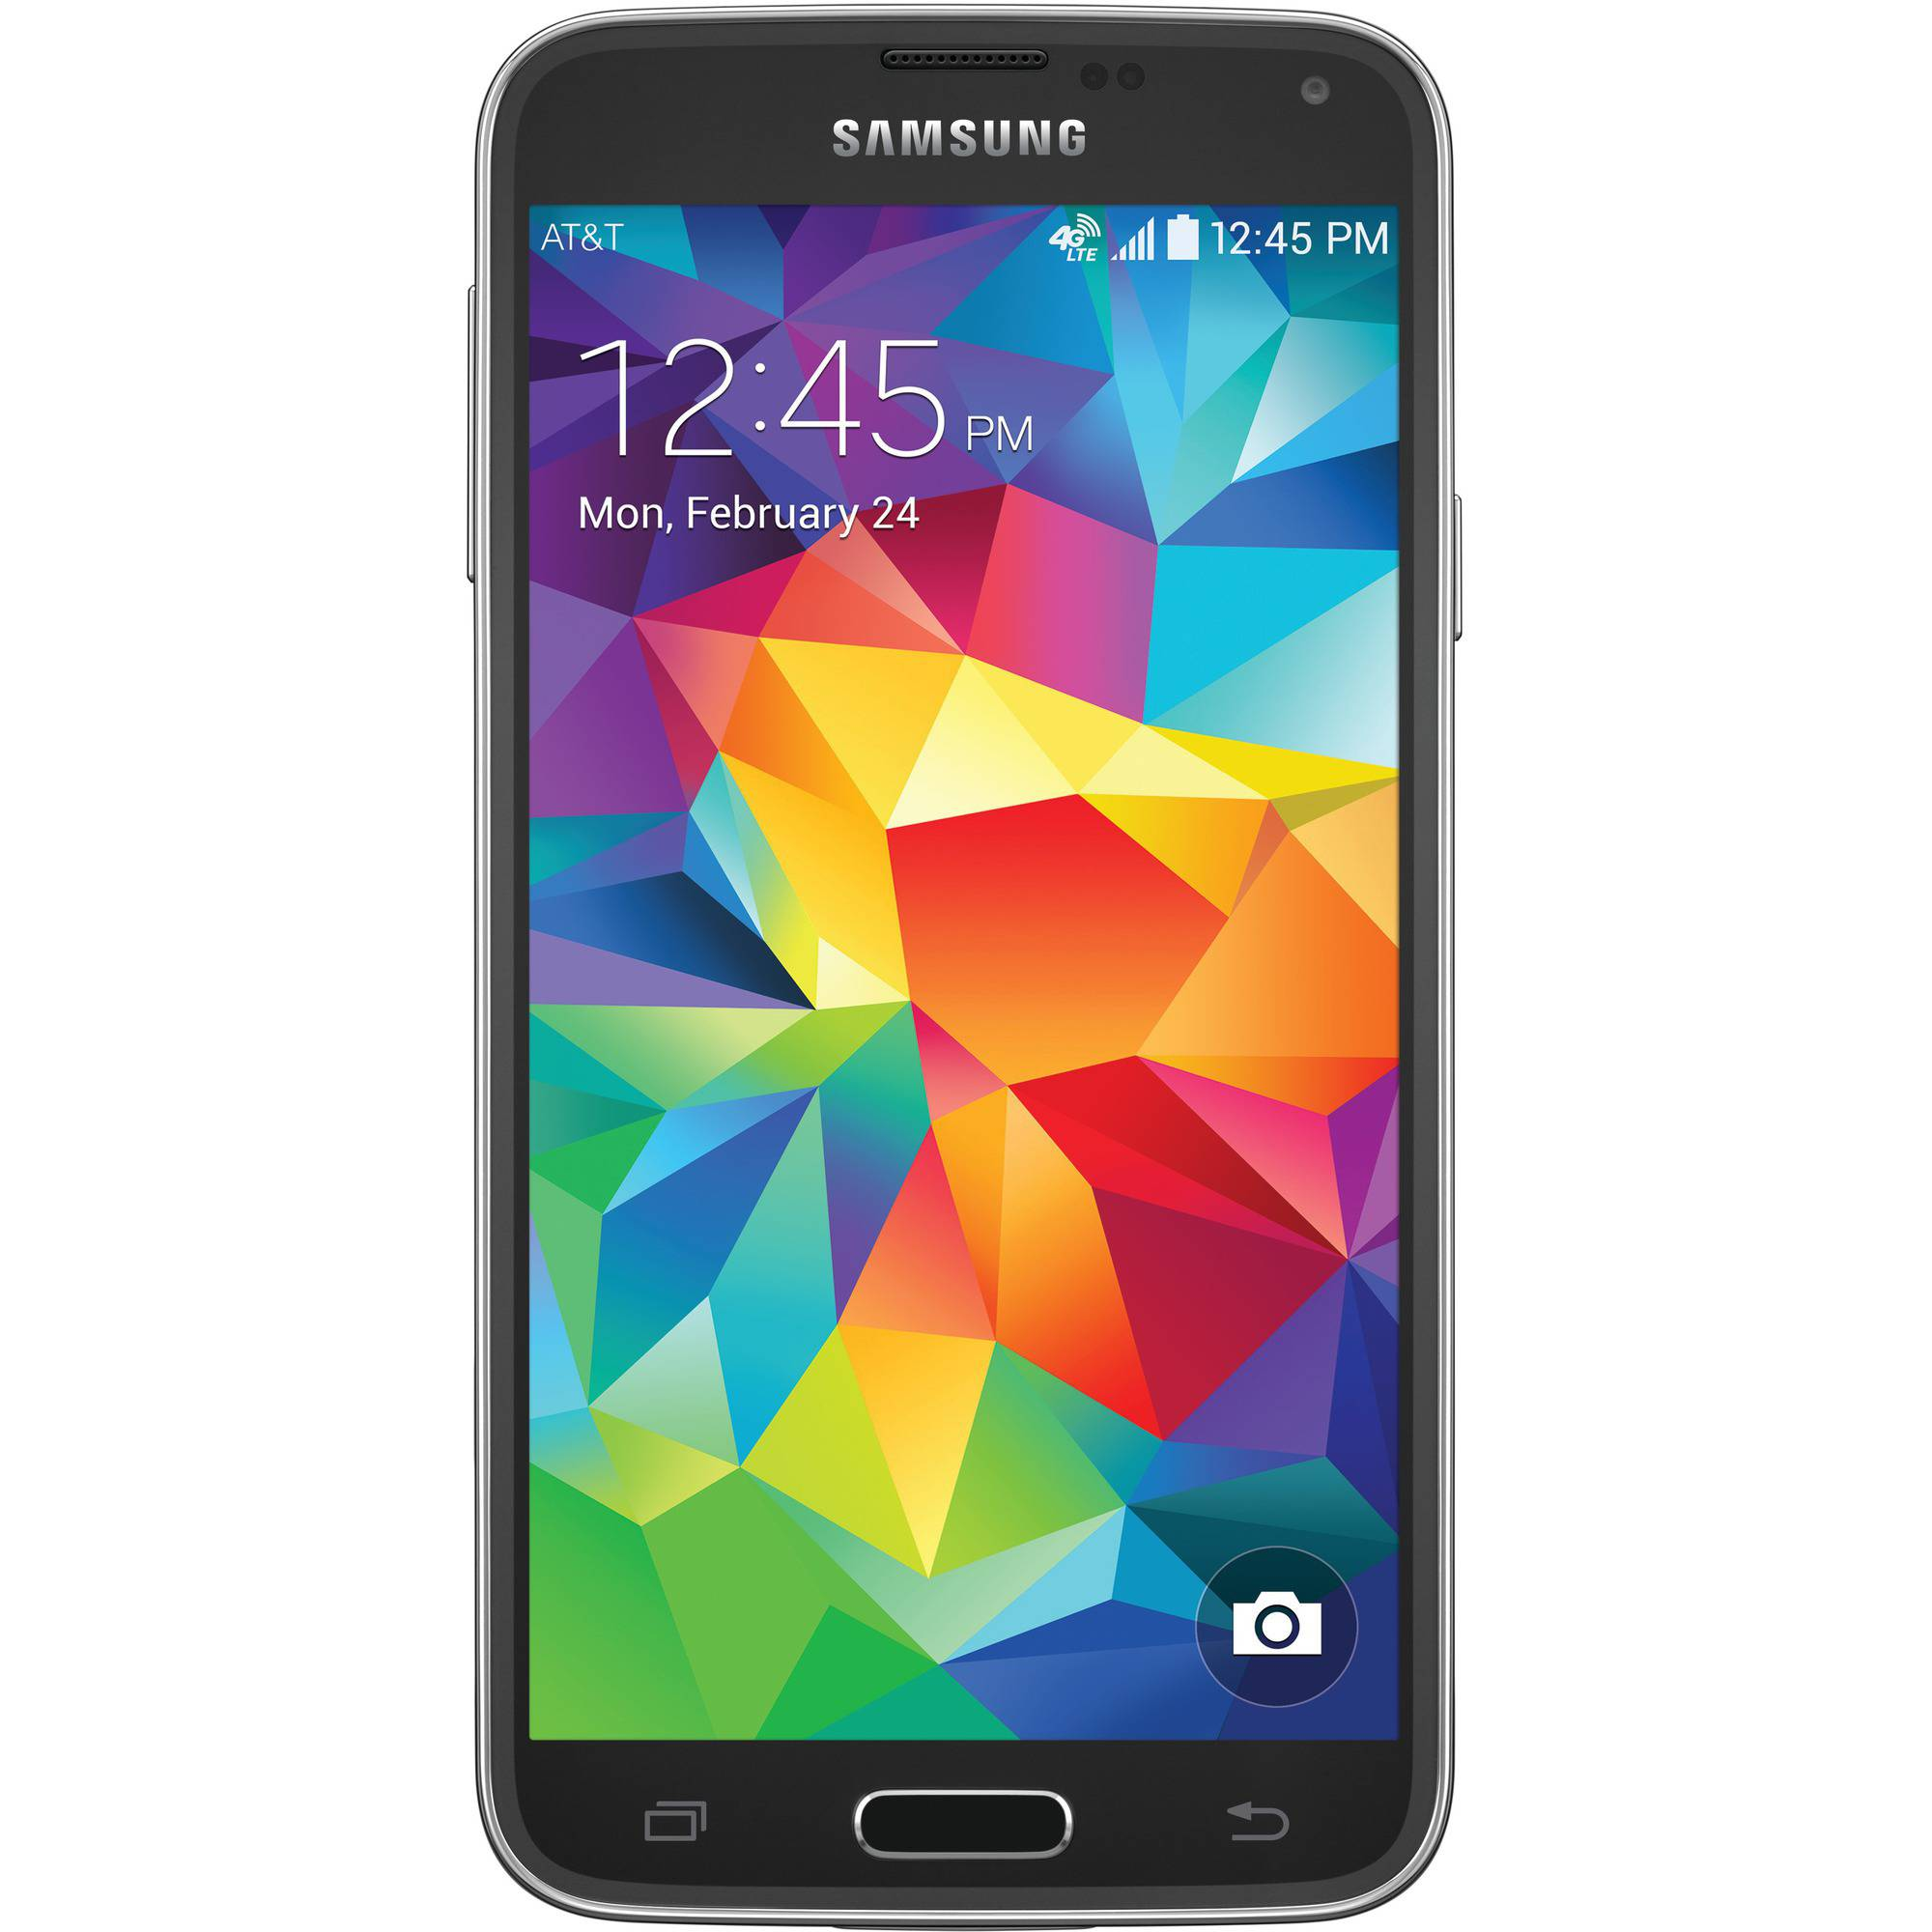 Samsung Galaxy S5 Certified Pre-Owned Smartphone, (Verizon)